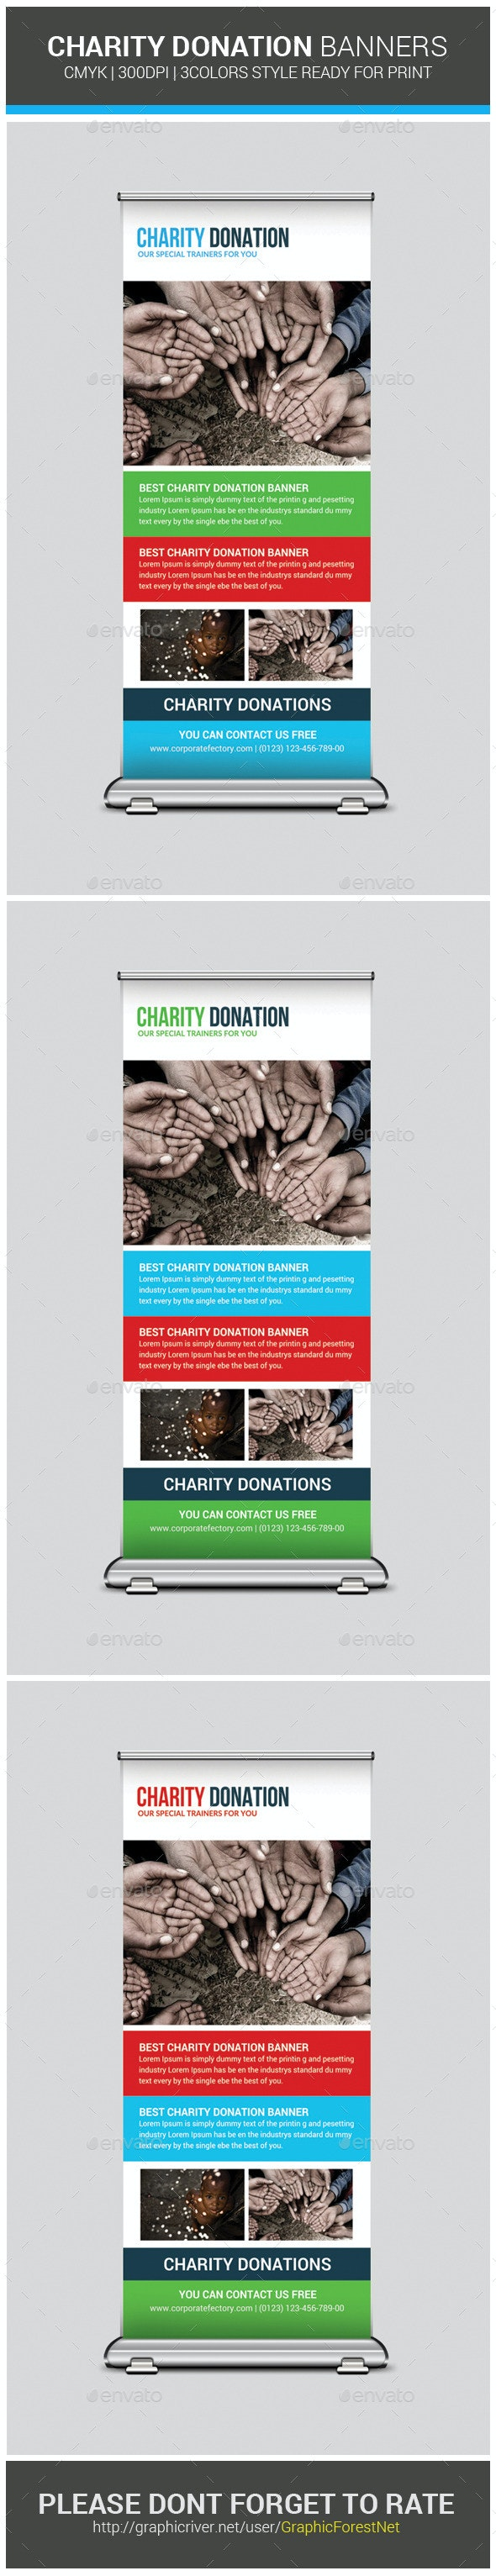 Charity Donation Banners Template - Signage Print Templates